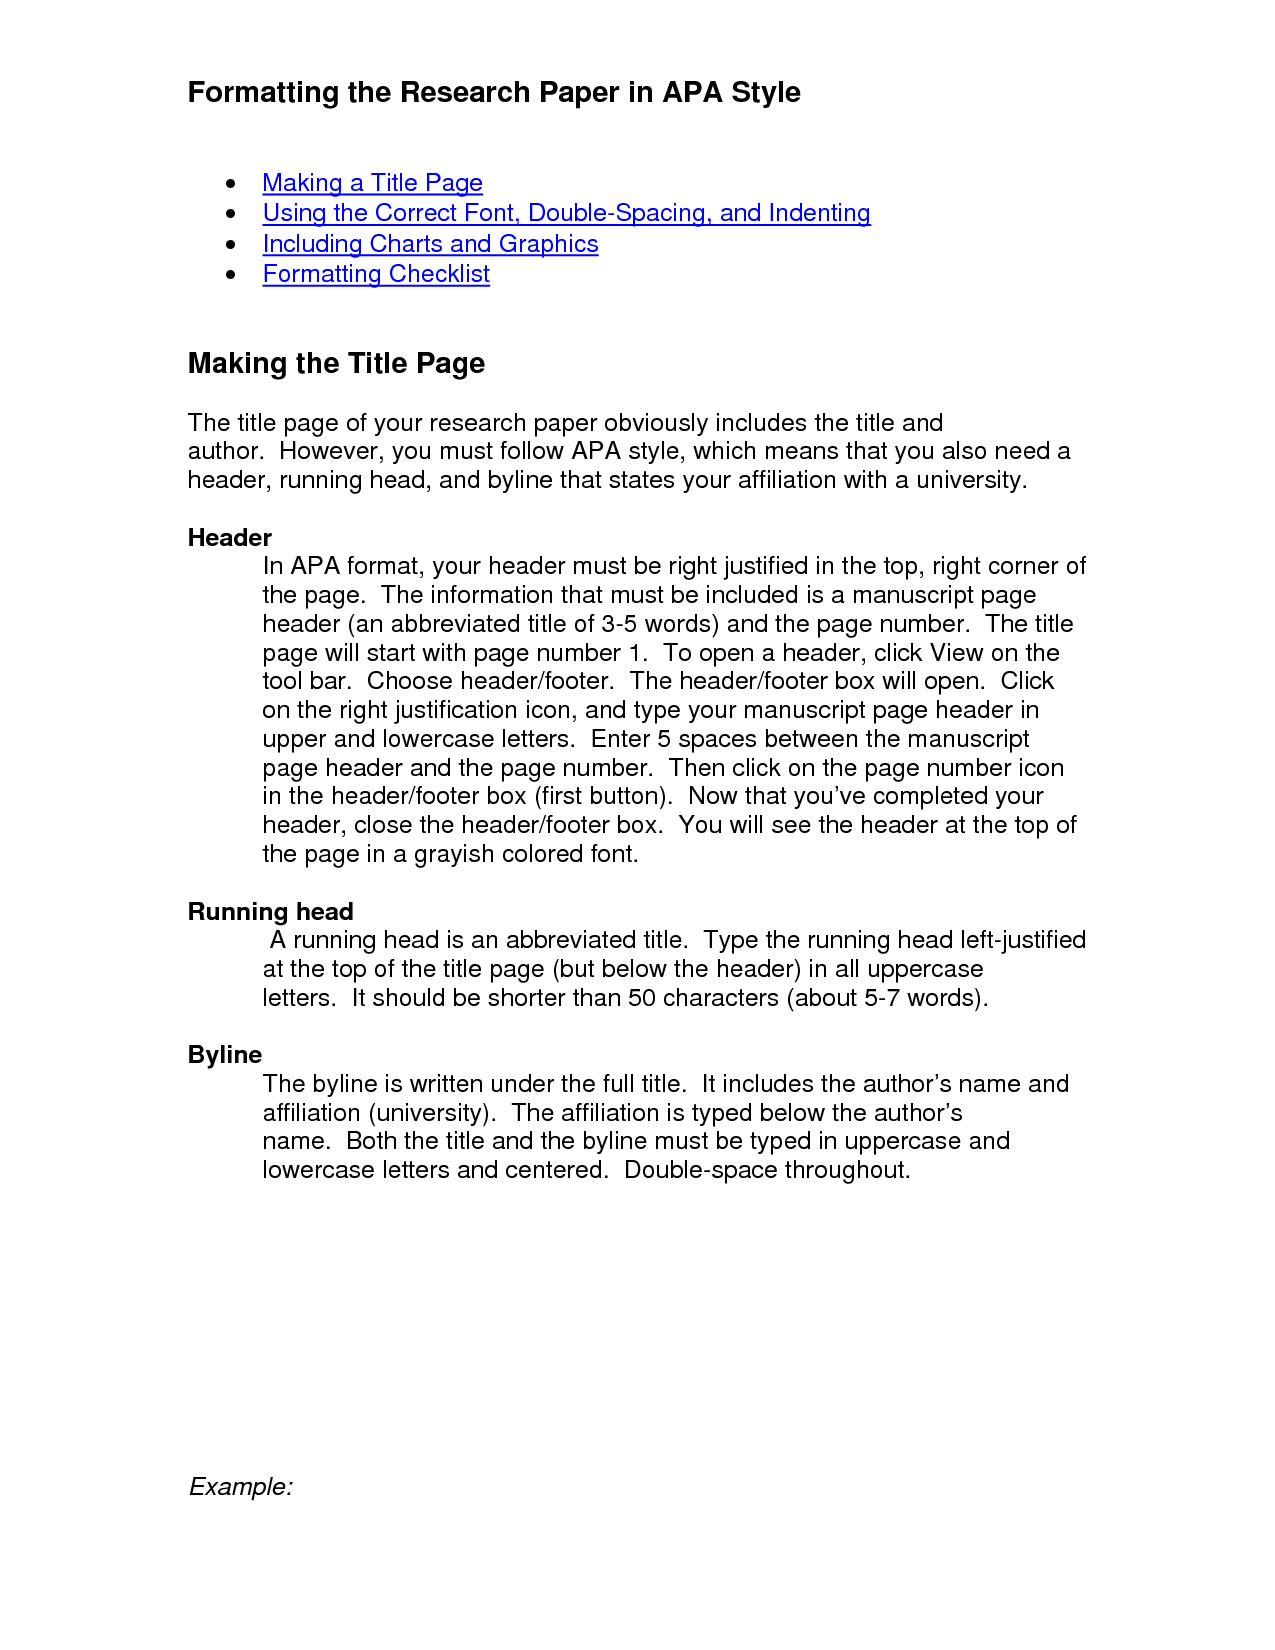 research on paper This handout provides detailed information about how to write research papers including discussing research papers as a genre, choosing topics, and finding sources.